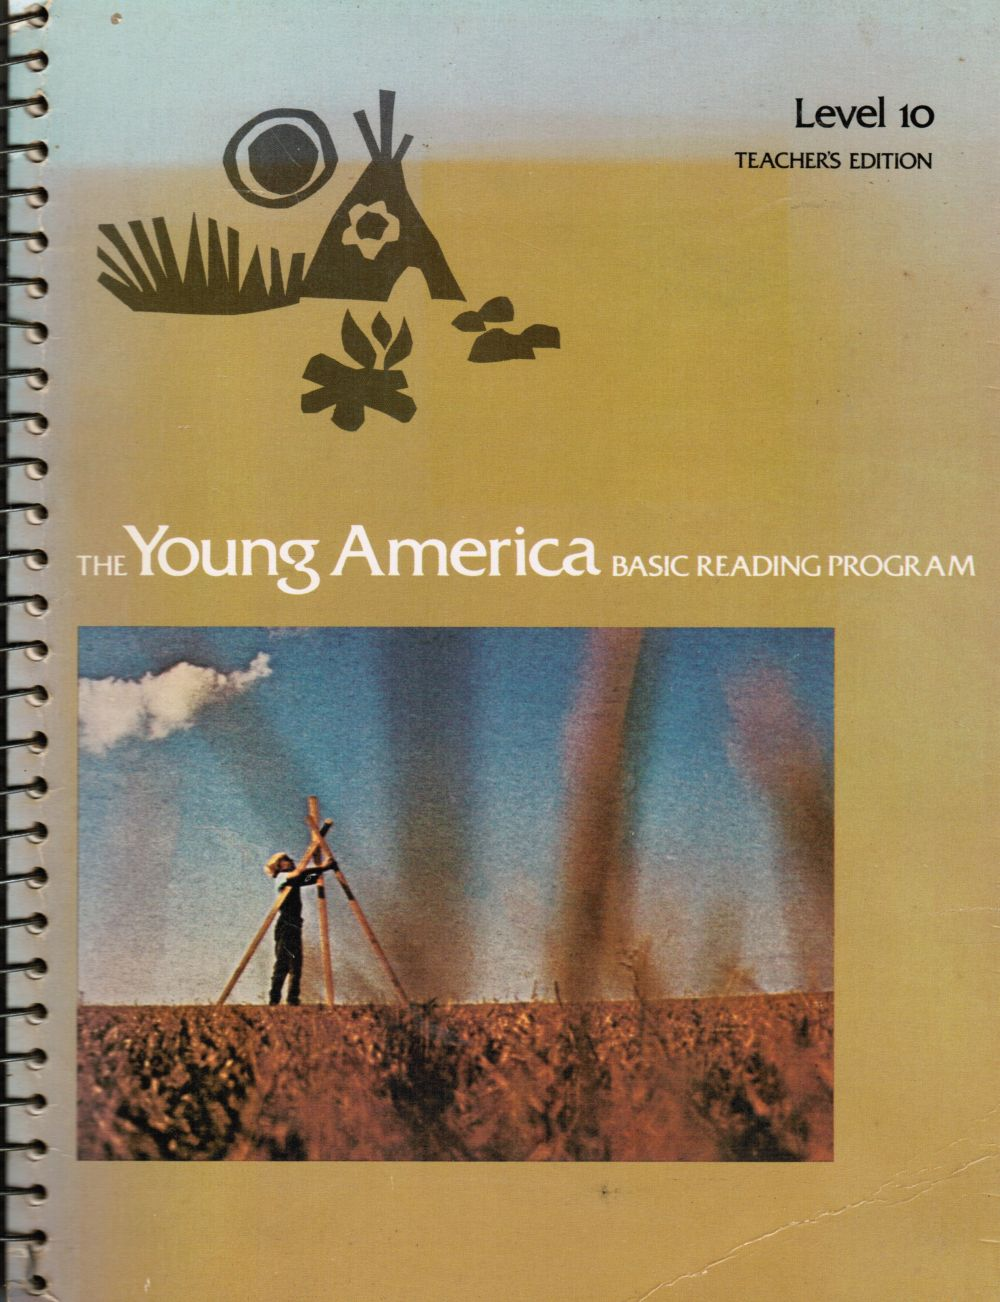 Image for The Young America : Basic Reading Program Level 10 Teacher's Edition